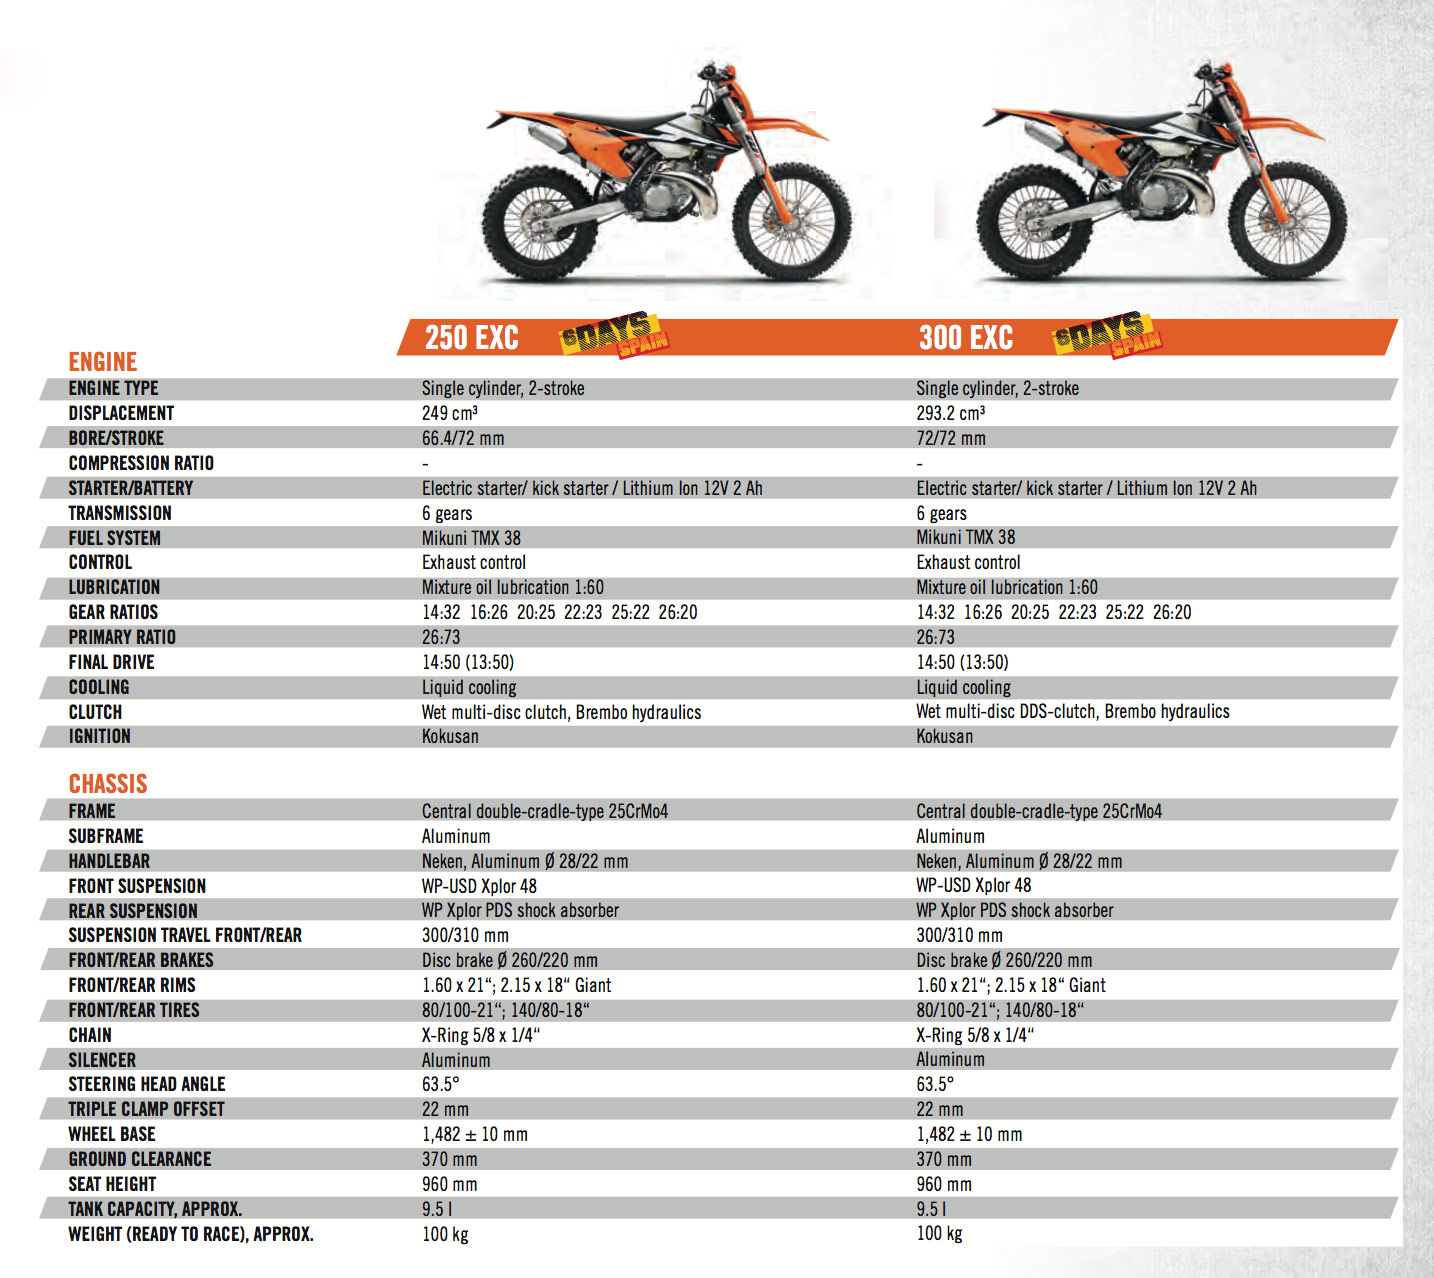 Exc Seat Height